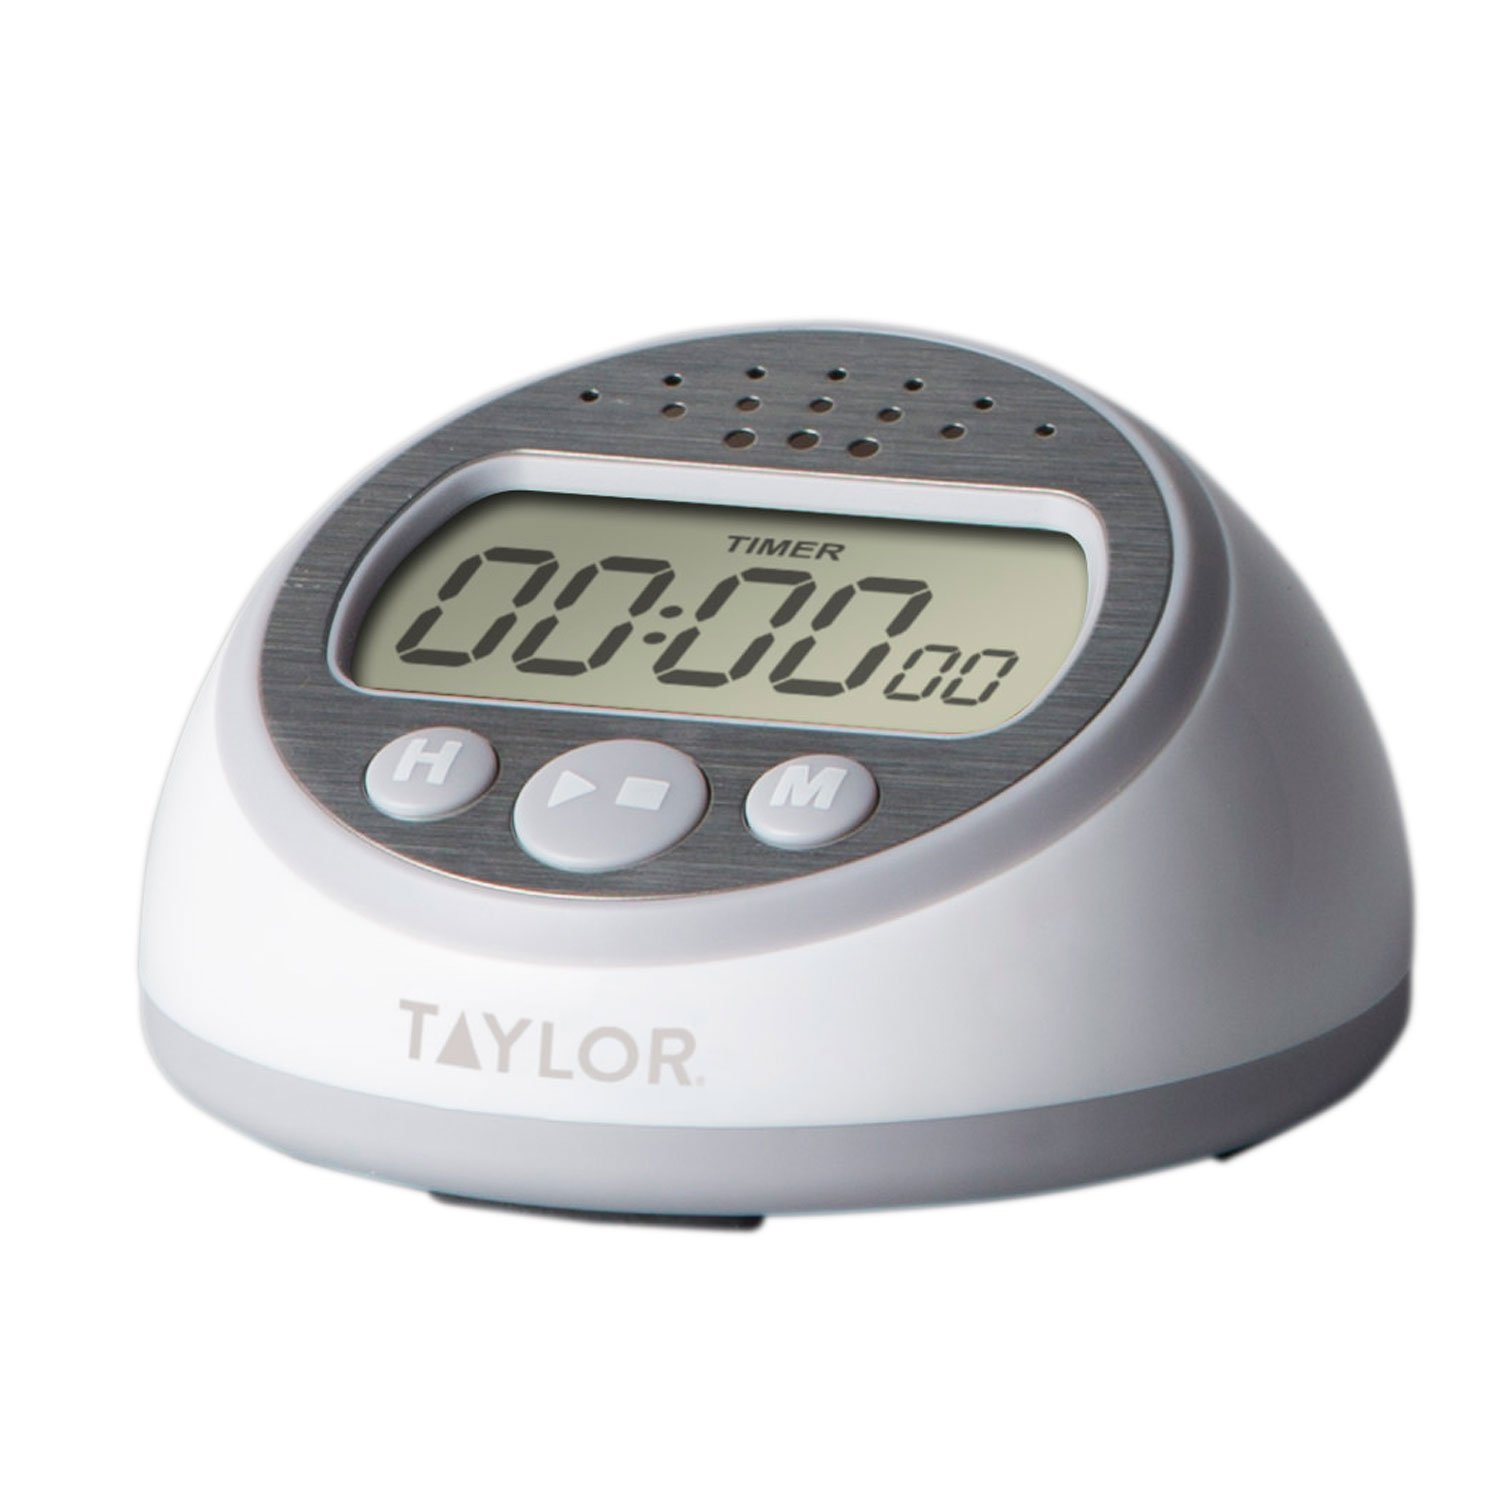 taylor precision products super loud timer gray